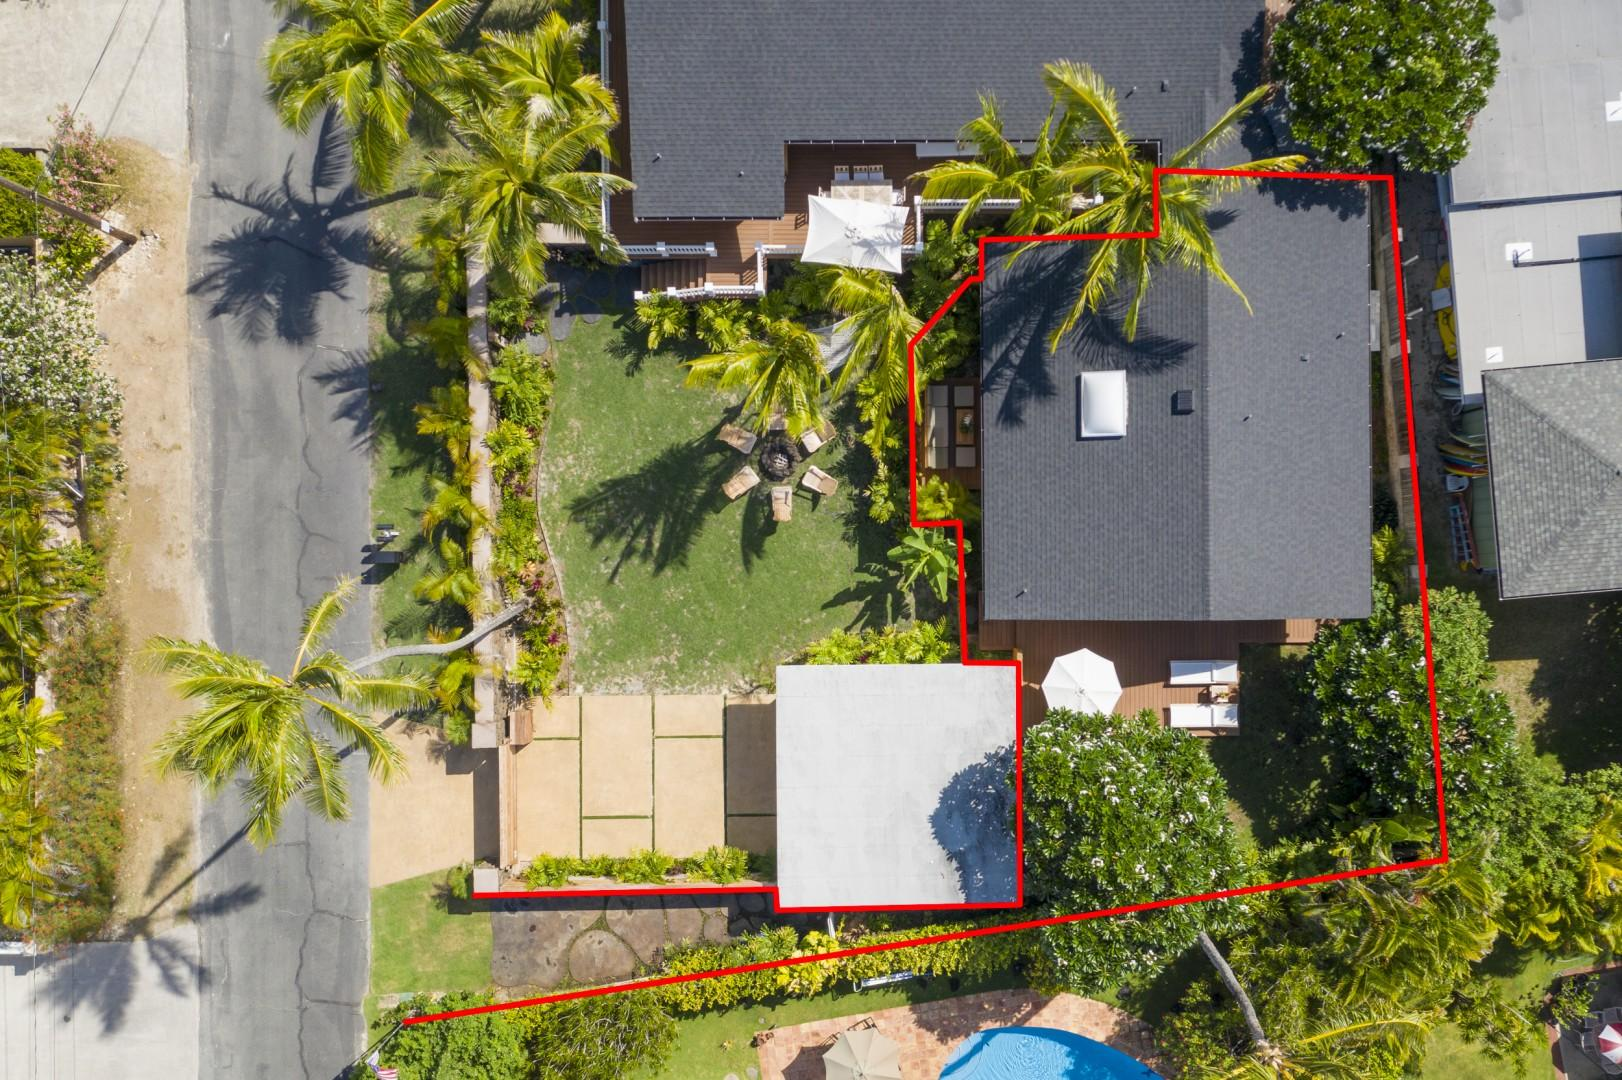 Aerial View showing Parking for 1 car and private entrance to home